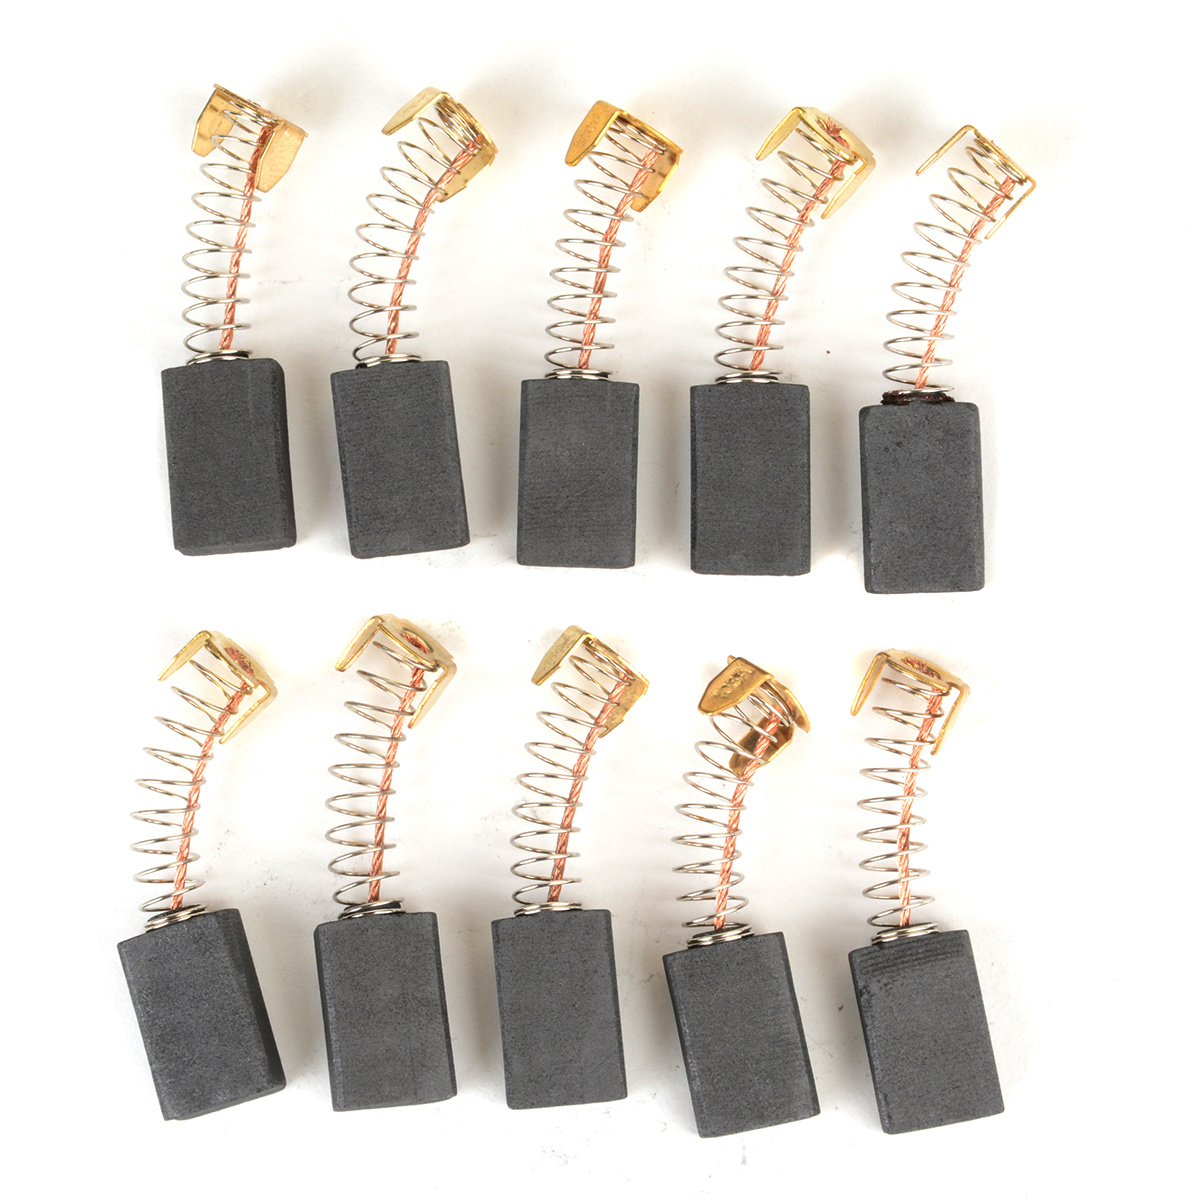 10pcs 6 x 12 x 20mm Universal Motor Carbon Brushes For Electric Tools